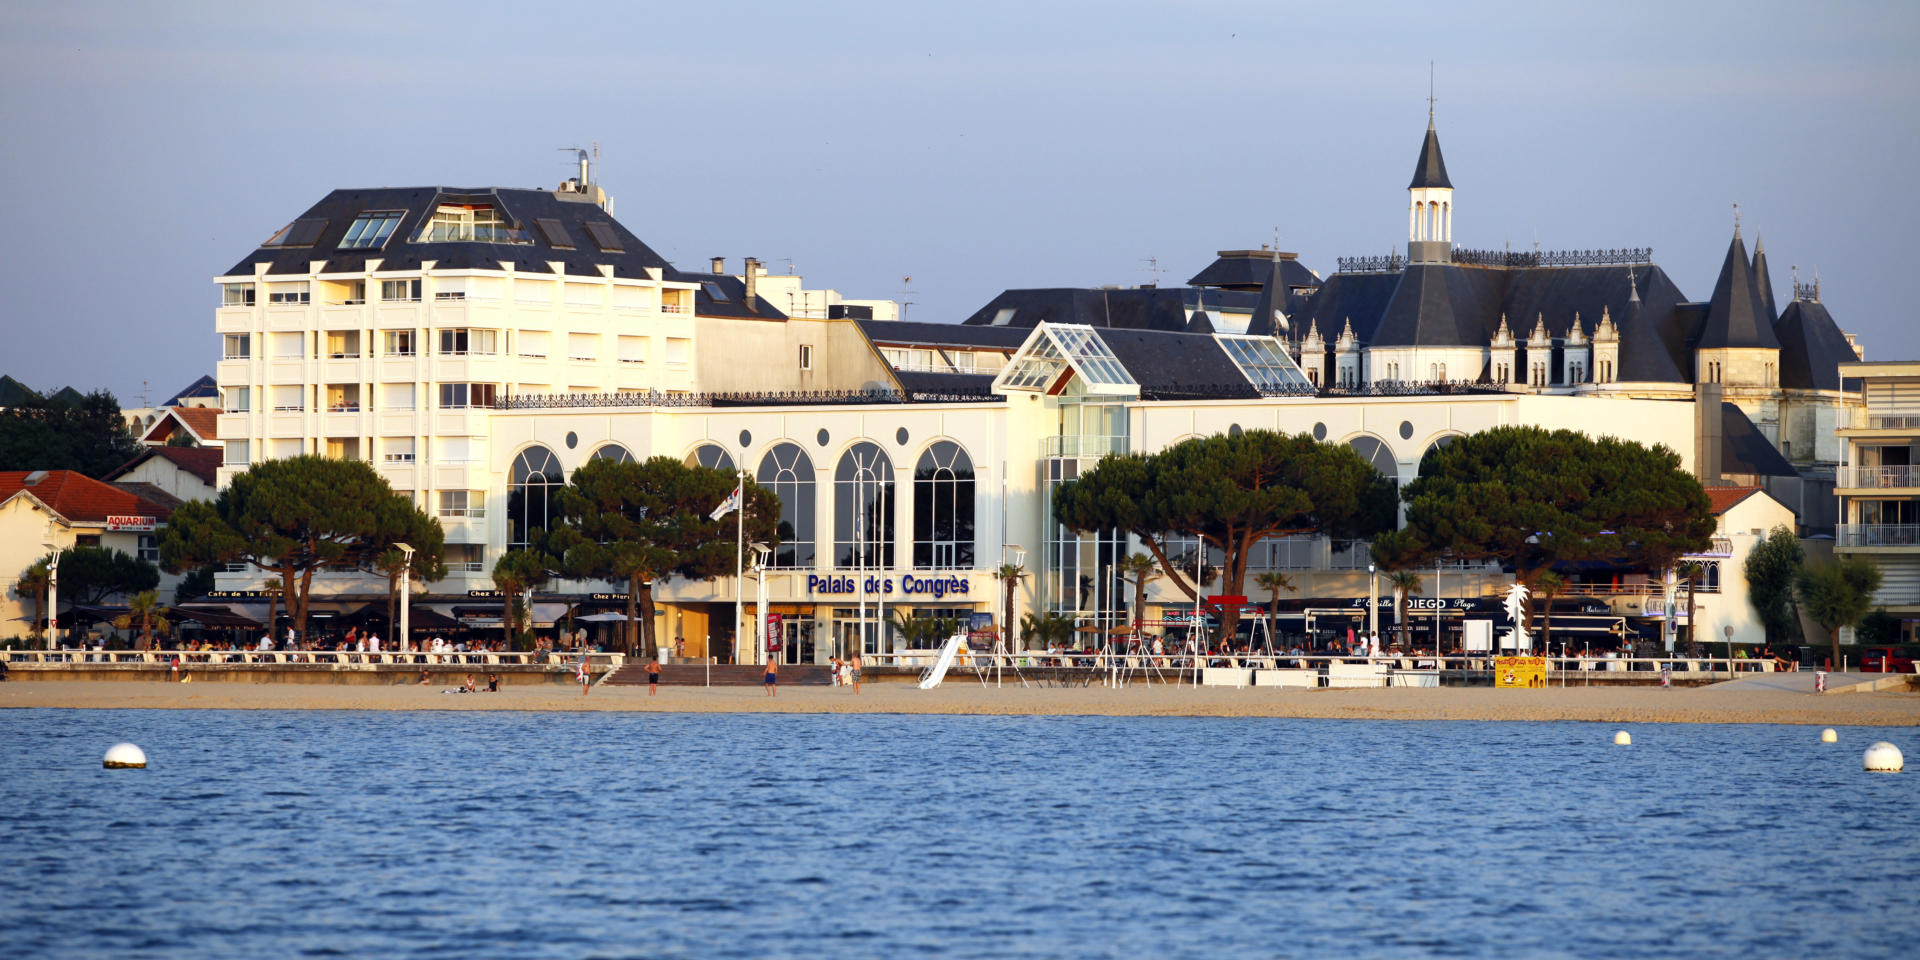 Arcachon S Destination Arcachon Office De Tourisme Des Congres